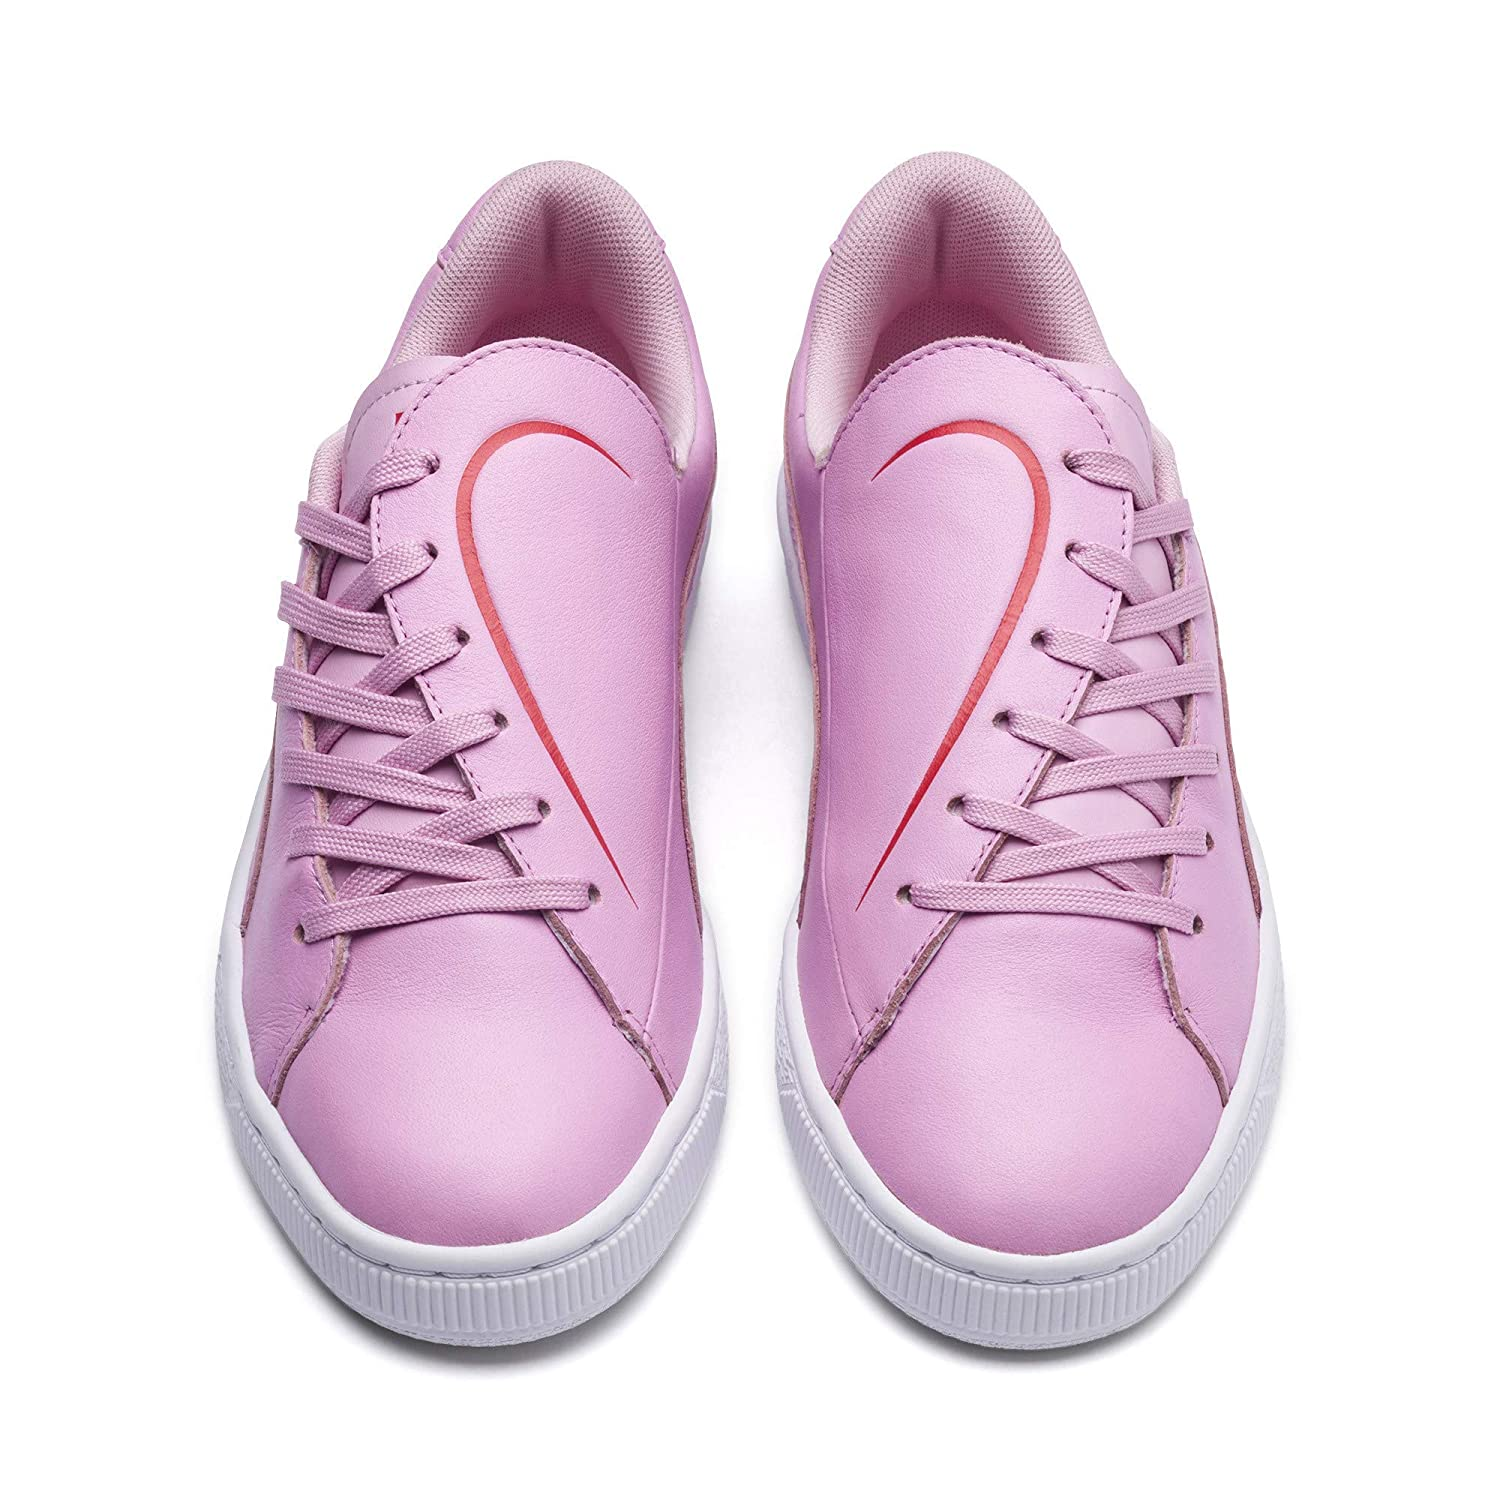 Puma Damen Basket Crush Emboss WN's Turnschuhe